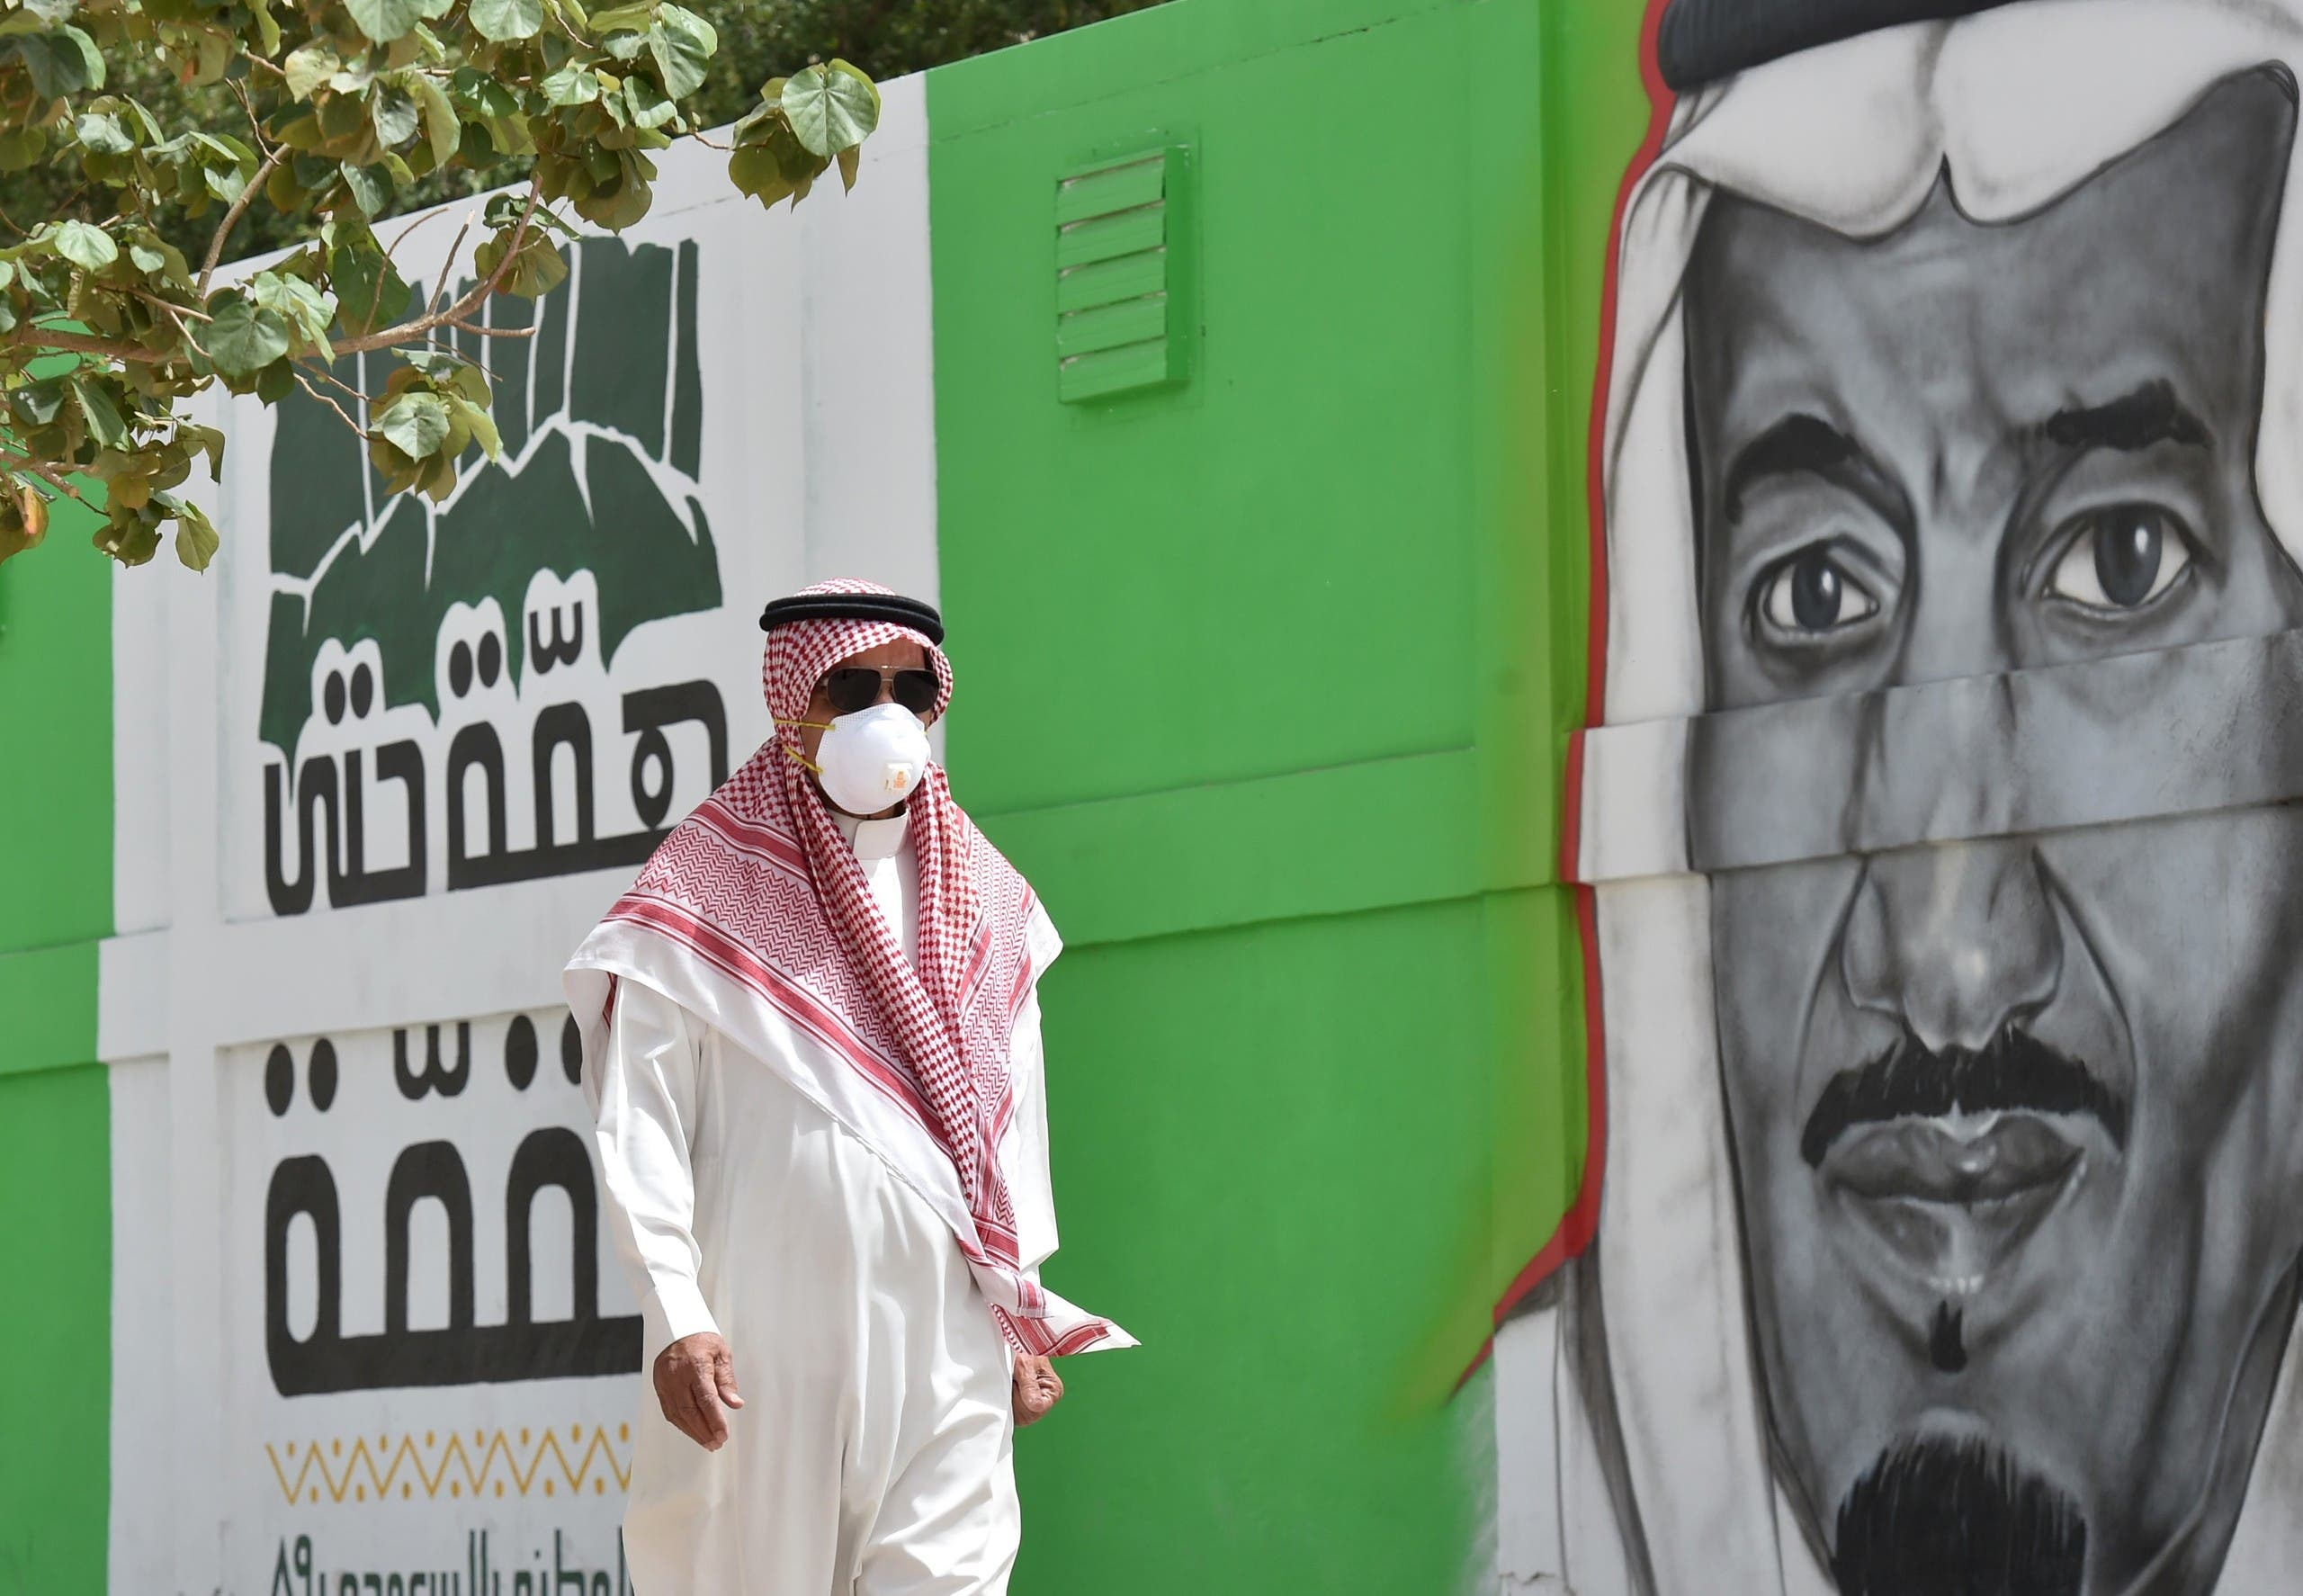 A Saudi man walks past a mural showing the face of King Salman bin Abdulaziz, in Riyadh on March 15, 2020. (AFP)